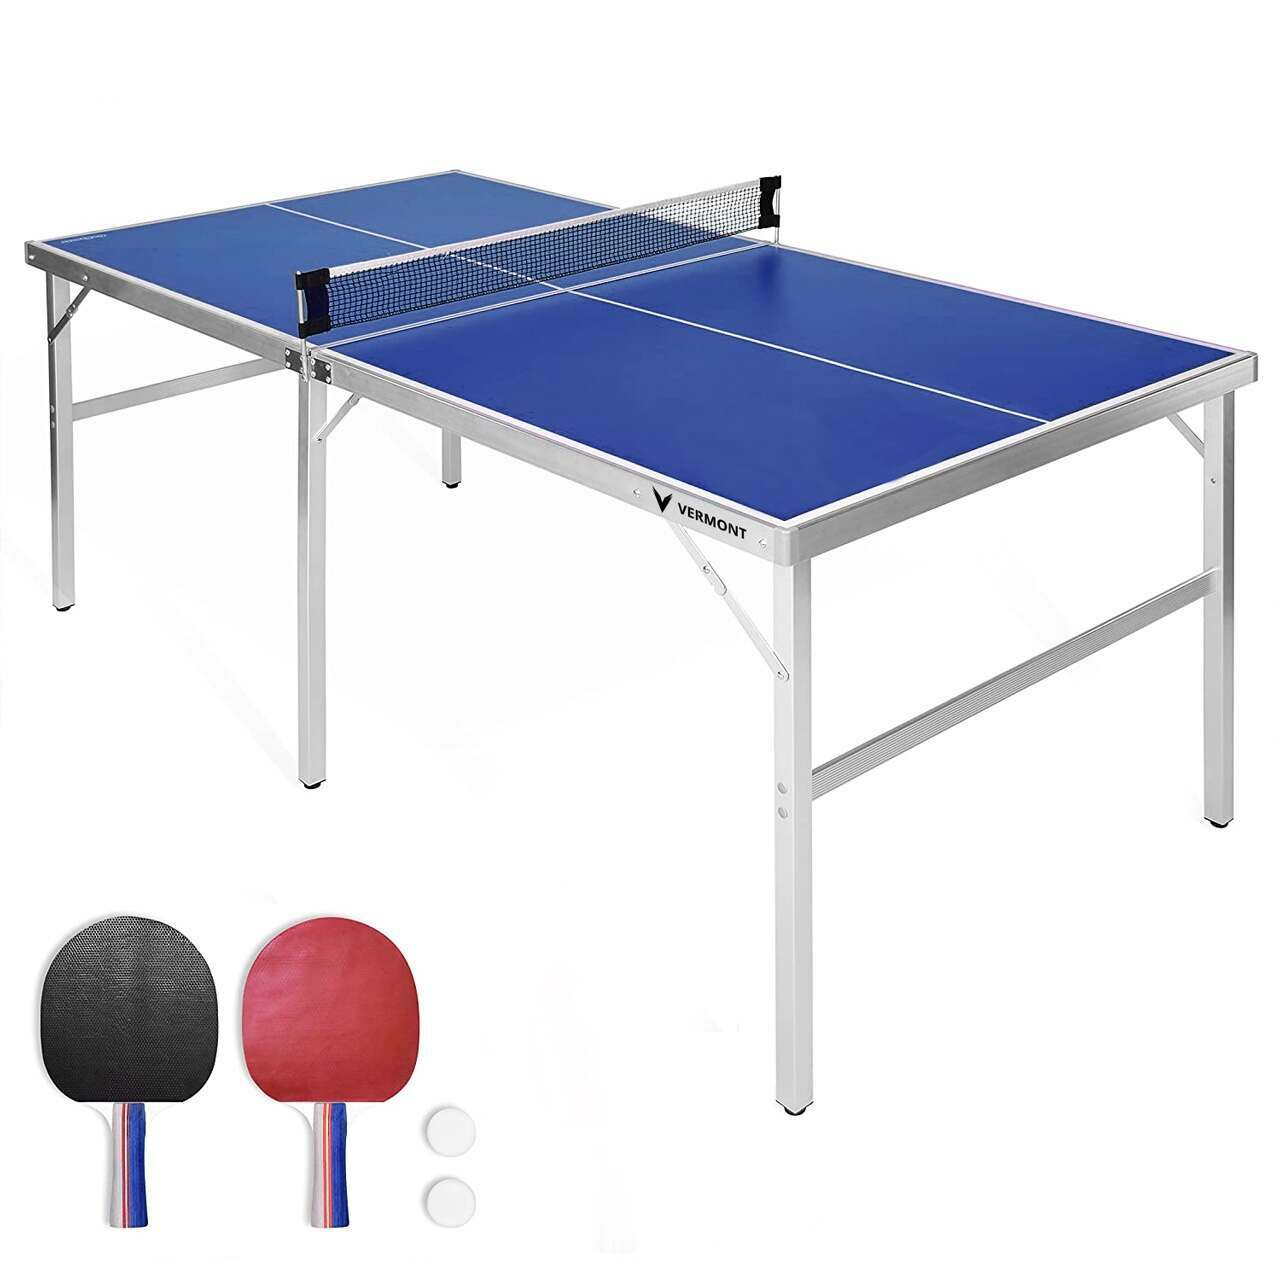 Vermont Midi Table Tennis Table